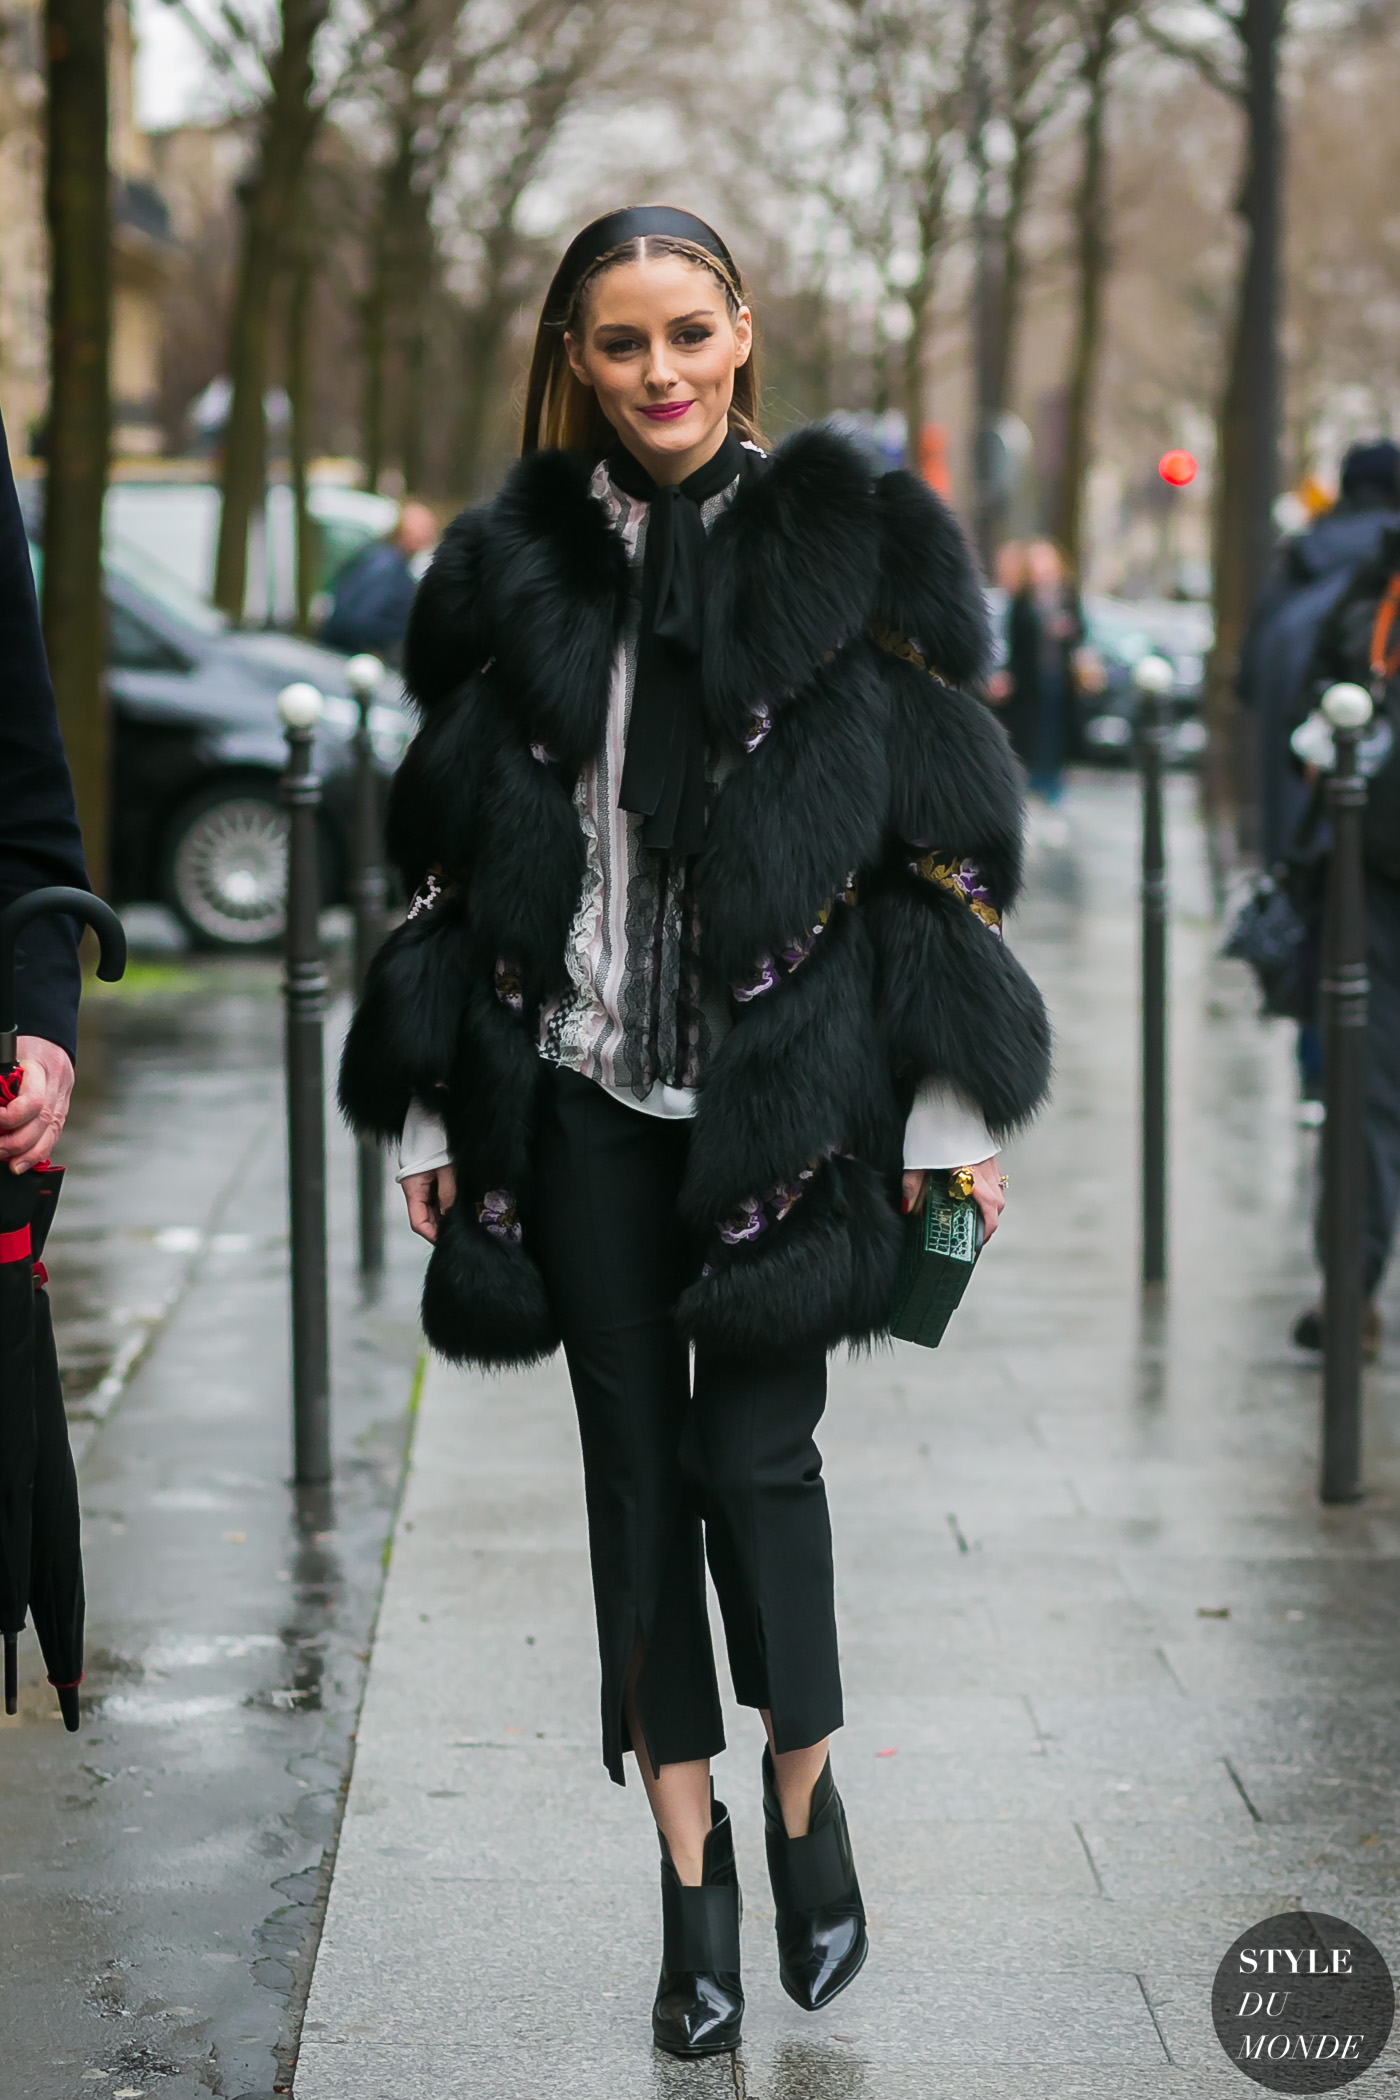 706e5e820d5 Olivia Palermo by STYLEDUMONDE Street Style Fashion Photography ...